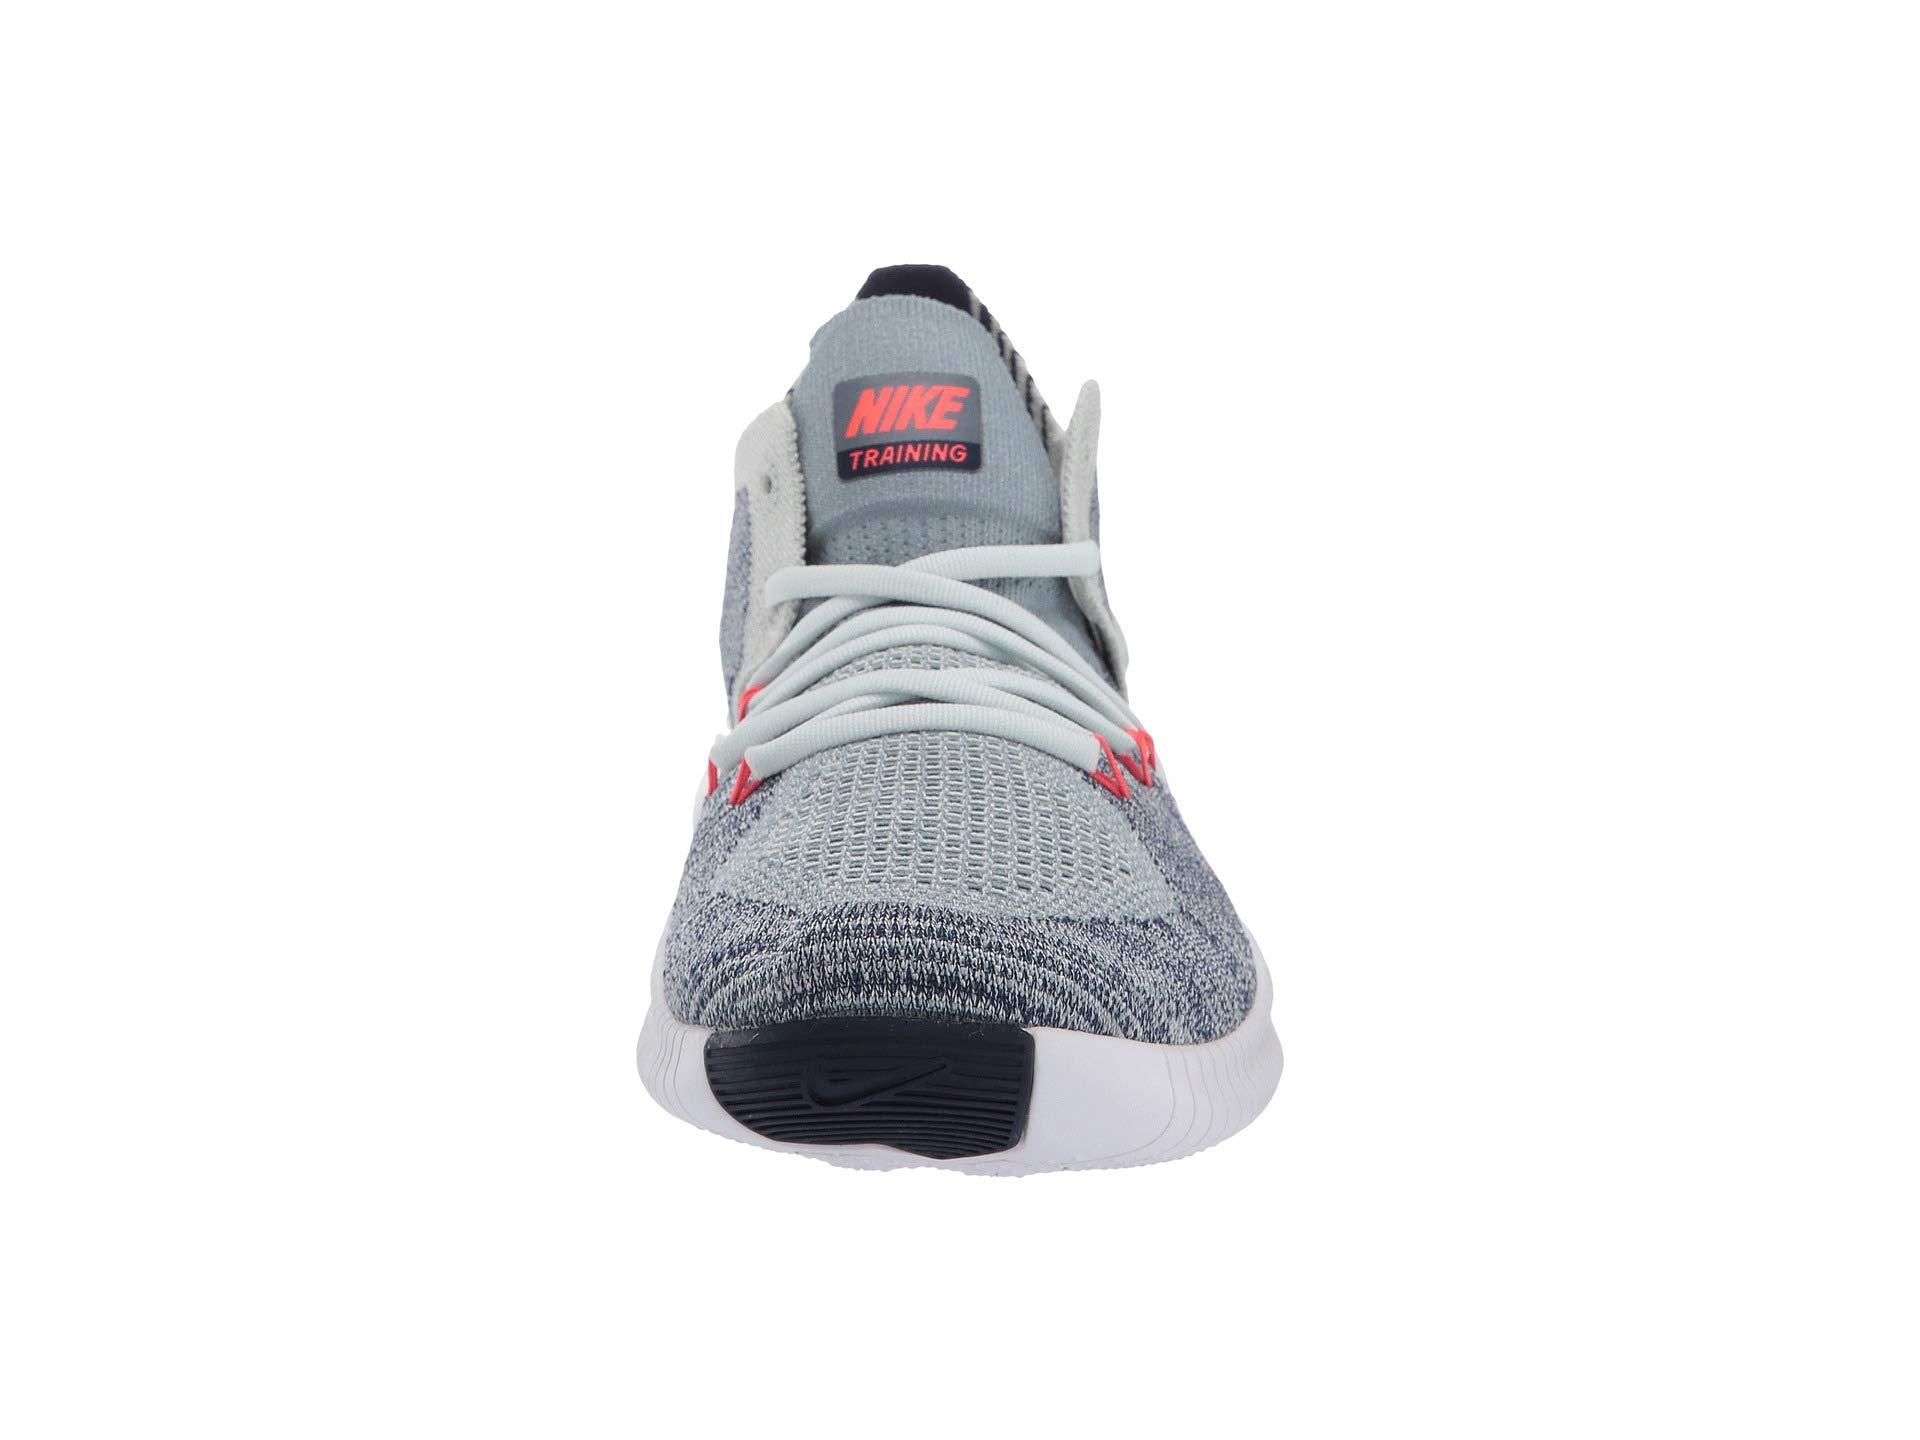 new product 934f7 a8074 Nike Free Tr Flyknit 3 Fitness cross Training Shoes in Gray - Save ...